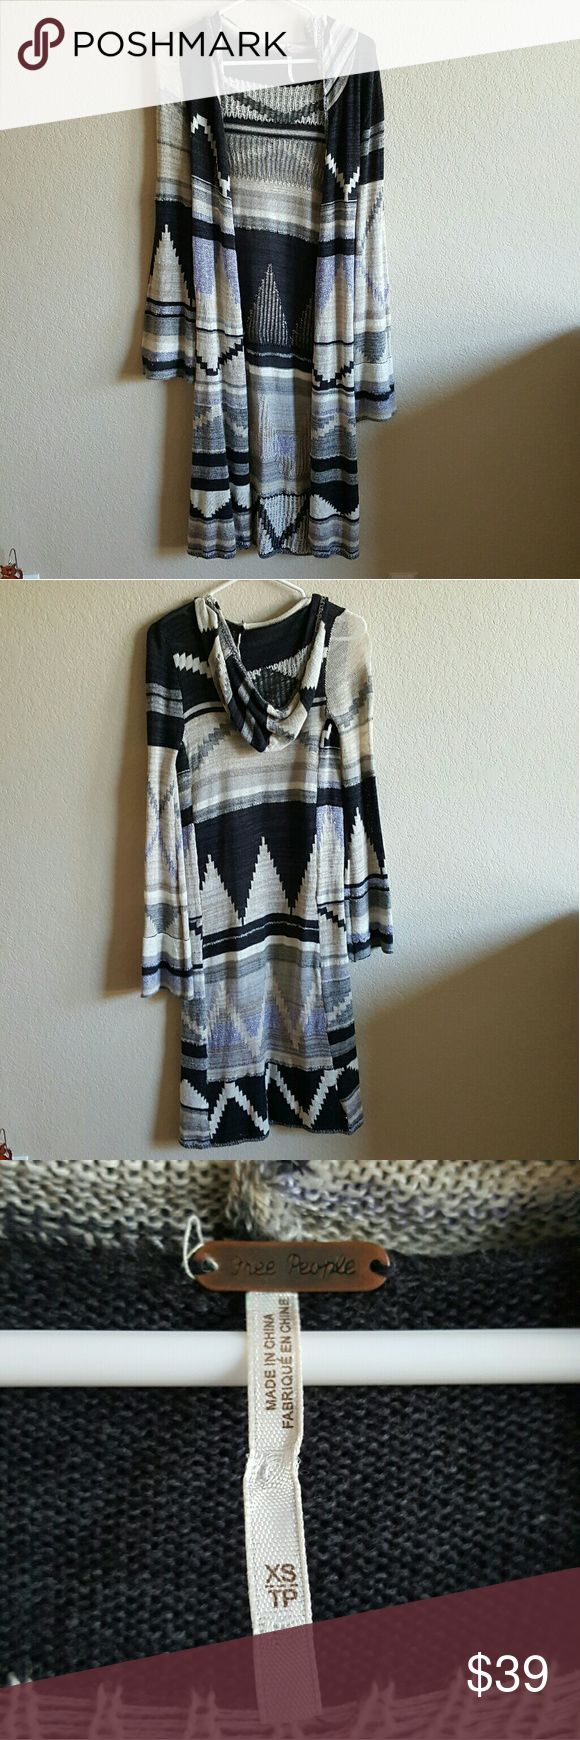 Free People Duster Aztec Print Hooded XS-M Free People hooded duster in shades of cream, gray, and black. Looks really cute with jeans and boots! Size XS, but runs loose so it could fit up to a medium. Bell shaped sleeves, 43.5 inches long. Some pilling on the sleeves as shown, but very good condition overall, only worn once or twice. Thanks for viewing! Free People Sweaters